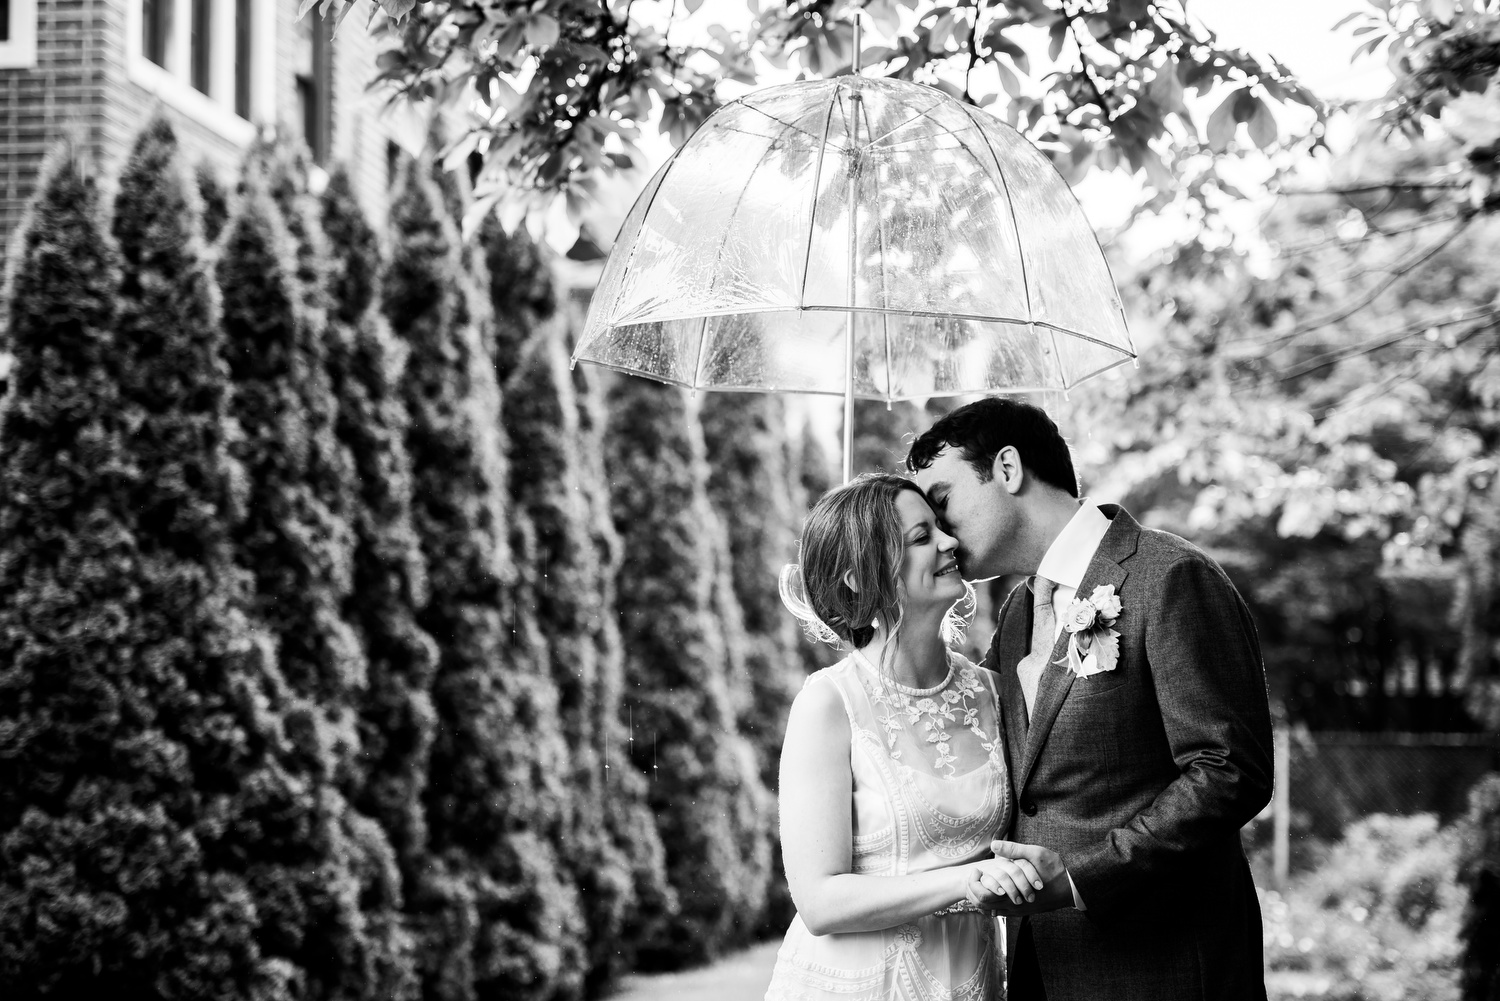 Outdoor rainy day portrait of the bride and groom during a Cheney Mansion wedding in Oak Park.